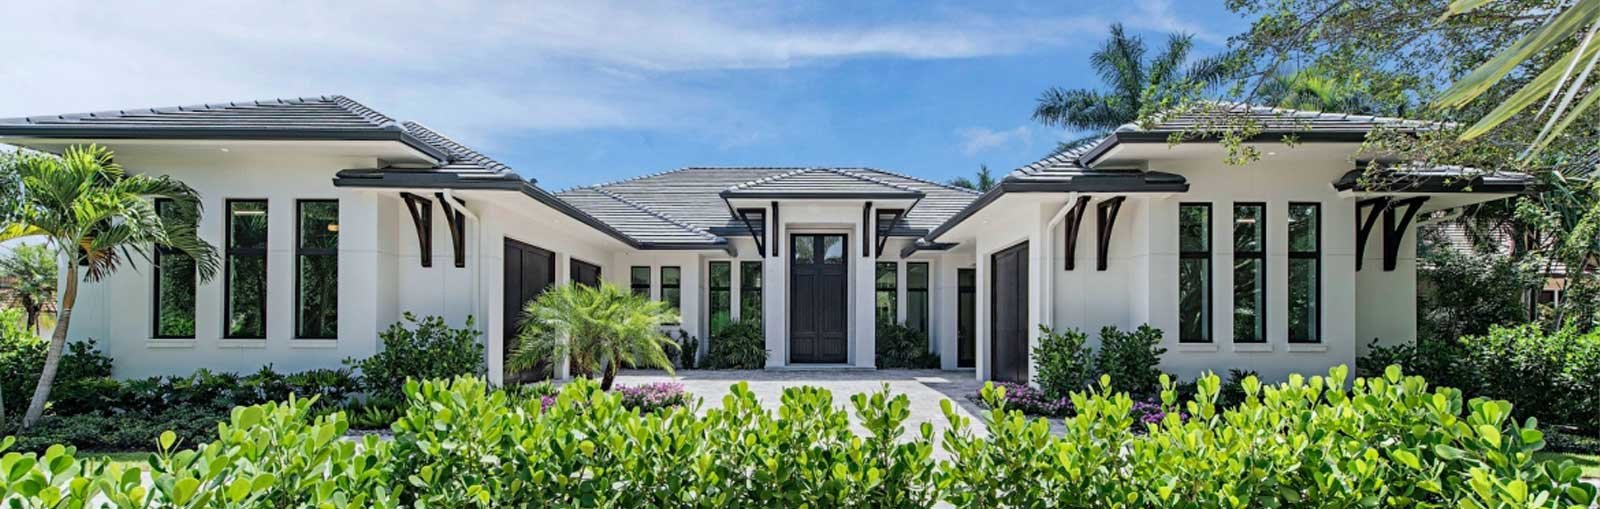 Home and Design - Naples Daily News | Knauf-Koenig Group - Naples, Florida General Contractor